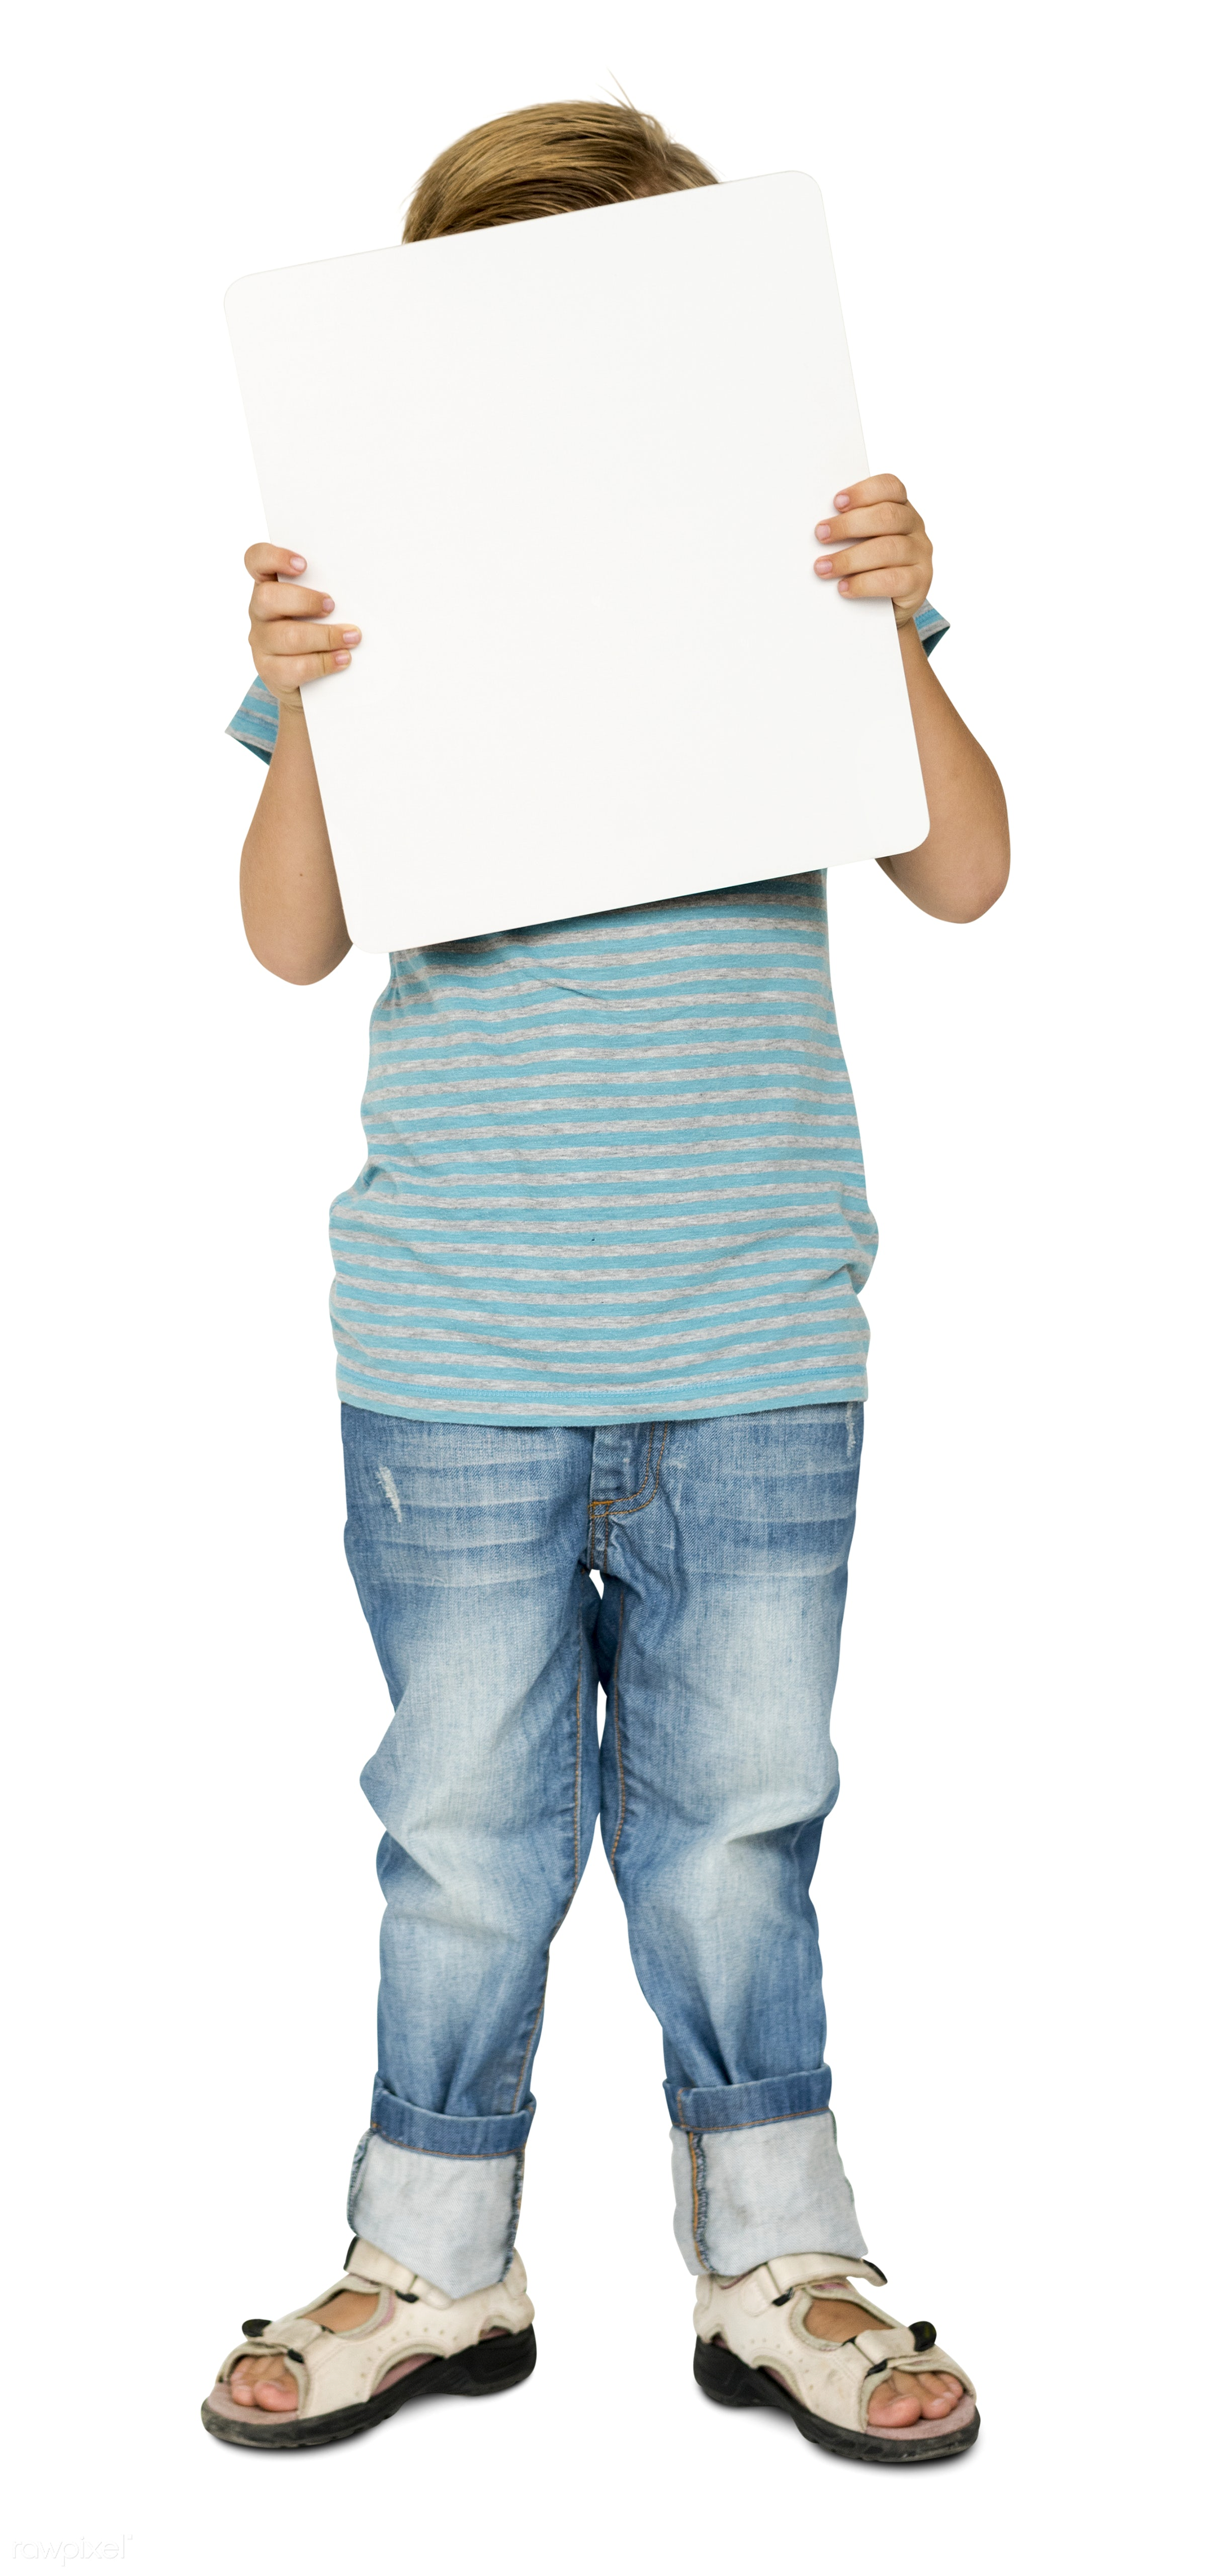 studio, expression, person, holding, little, show, people, kid, caucasian, placard, solo, empty, smile, alone, cheerful,...